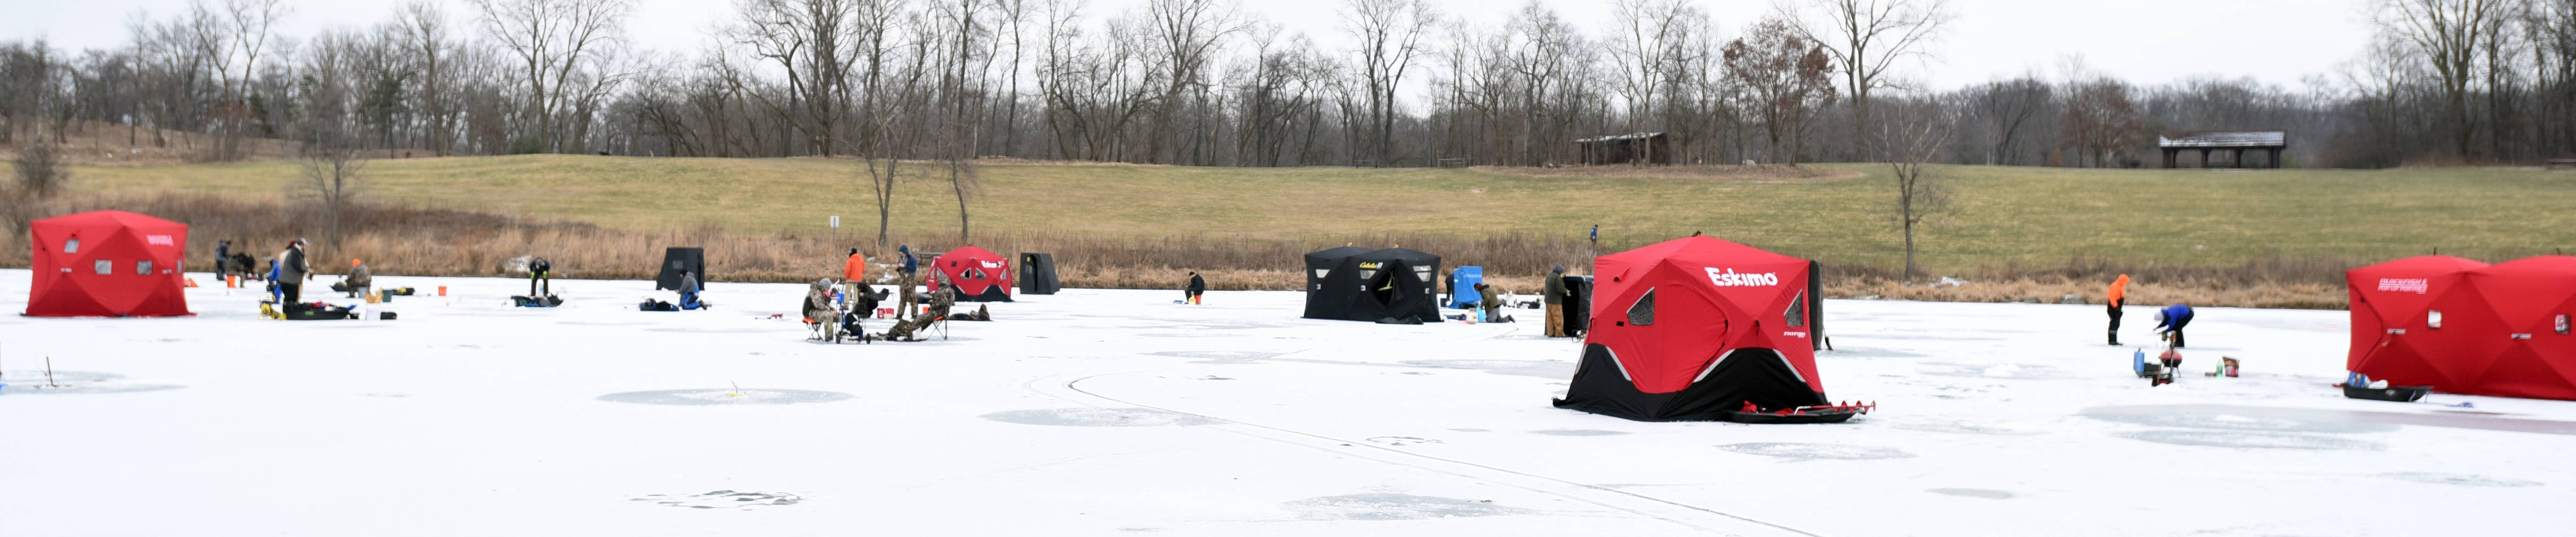 Paul Michna/pmichna@dailyherald.comThe DuPage County Forest Preserve District will sponsor its Hard Water Classic ice fishing tournament from noon to 3:30 p.m. Saturday, Jan. 14, on the 62-acre Silver Lake at Blackwell Forest Preserve in Warrenville